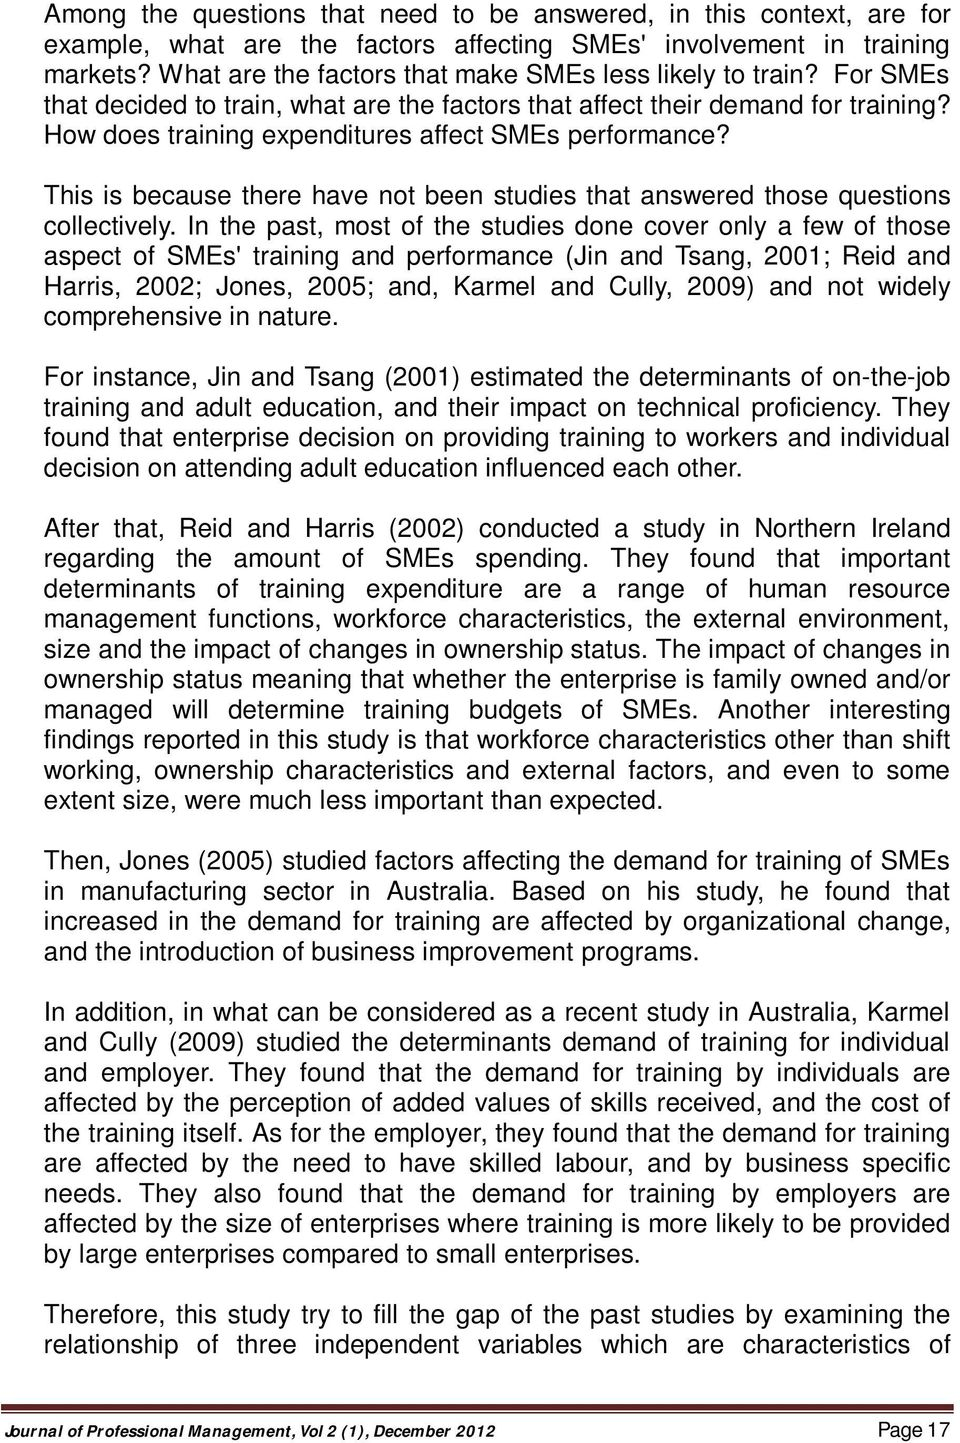 The Impact of Training on Small and Medium Enterprises (SMEs